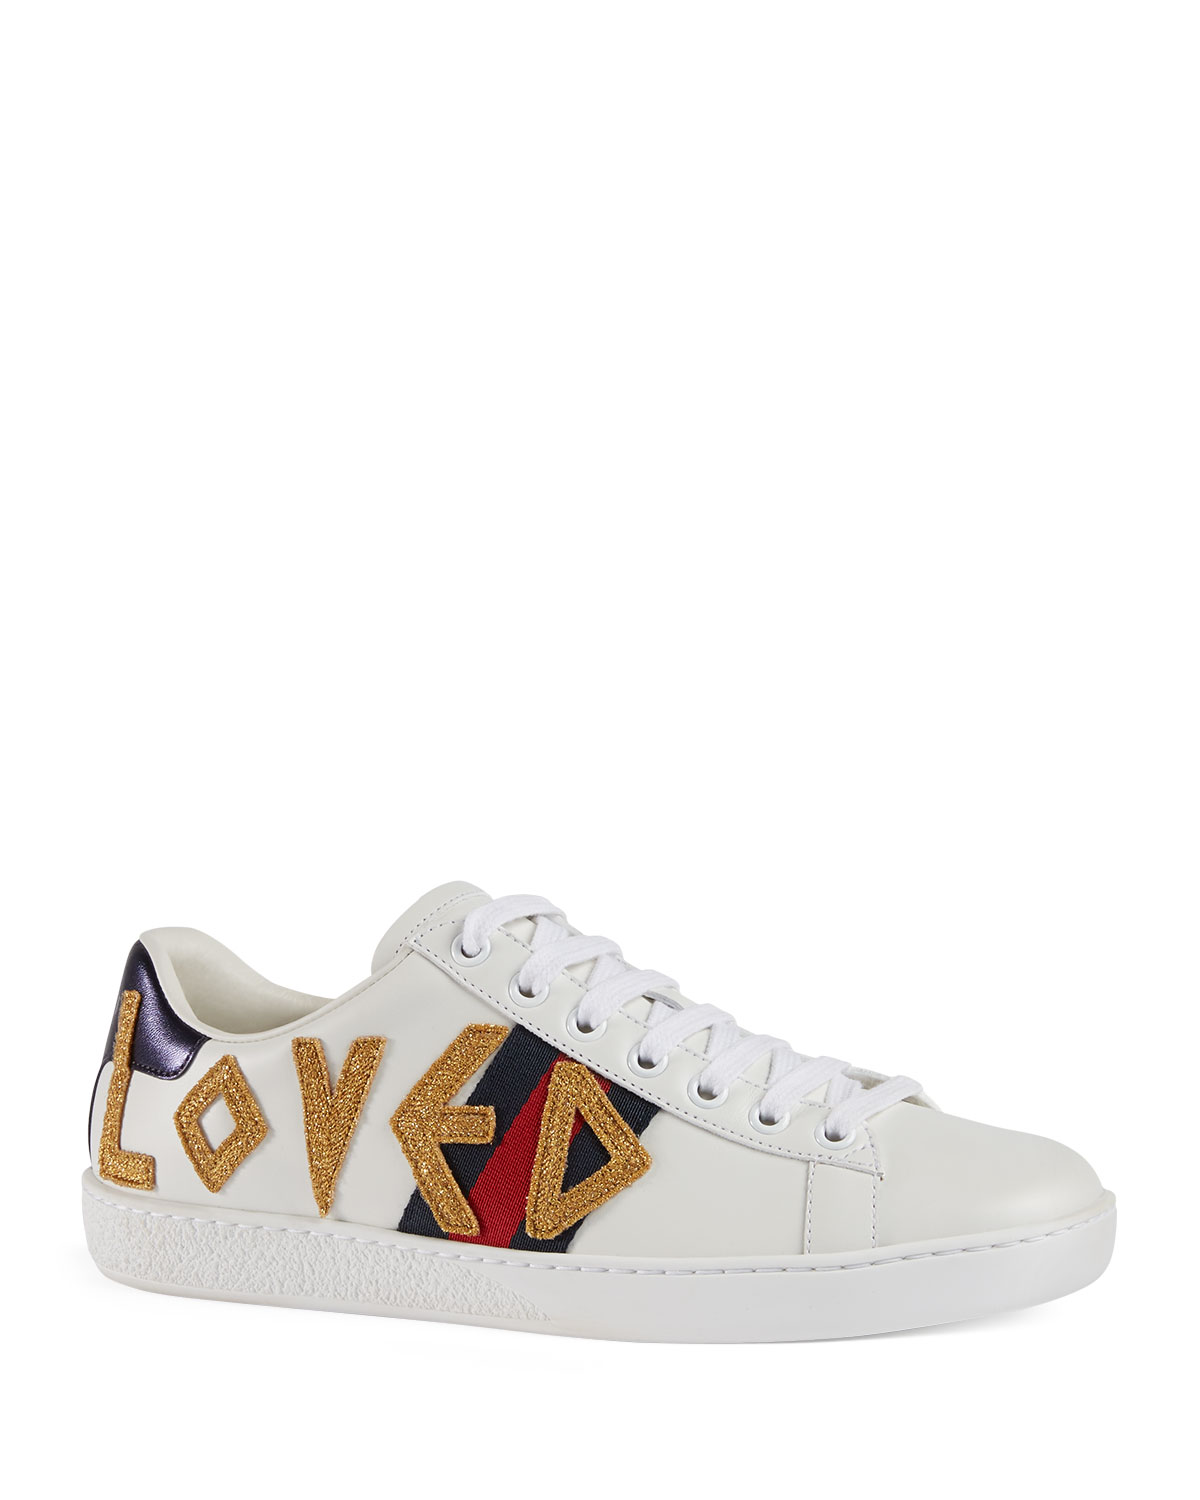 30beb3720 Embroidered Gucci Shoes | Neiman Marcus